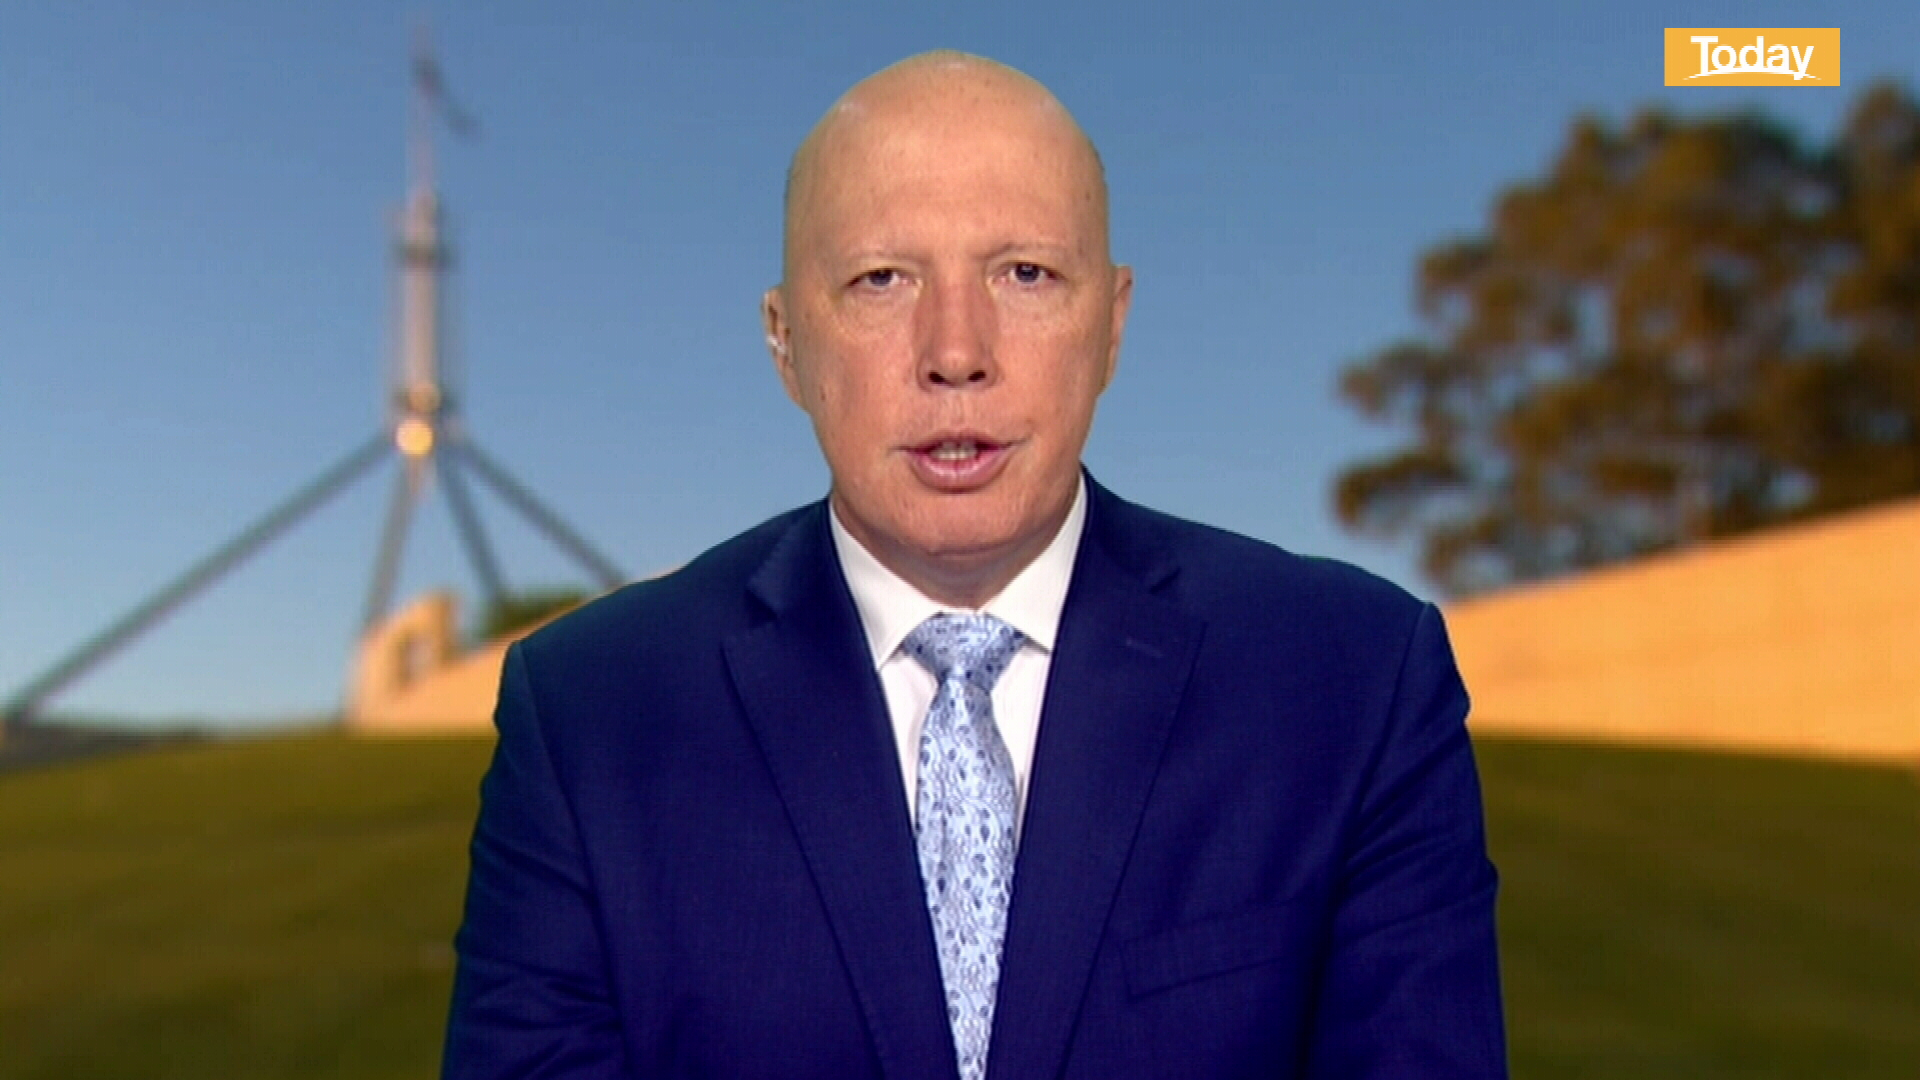 Coronavirus: Dutton fears protests could spread COVID-19